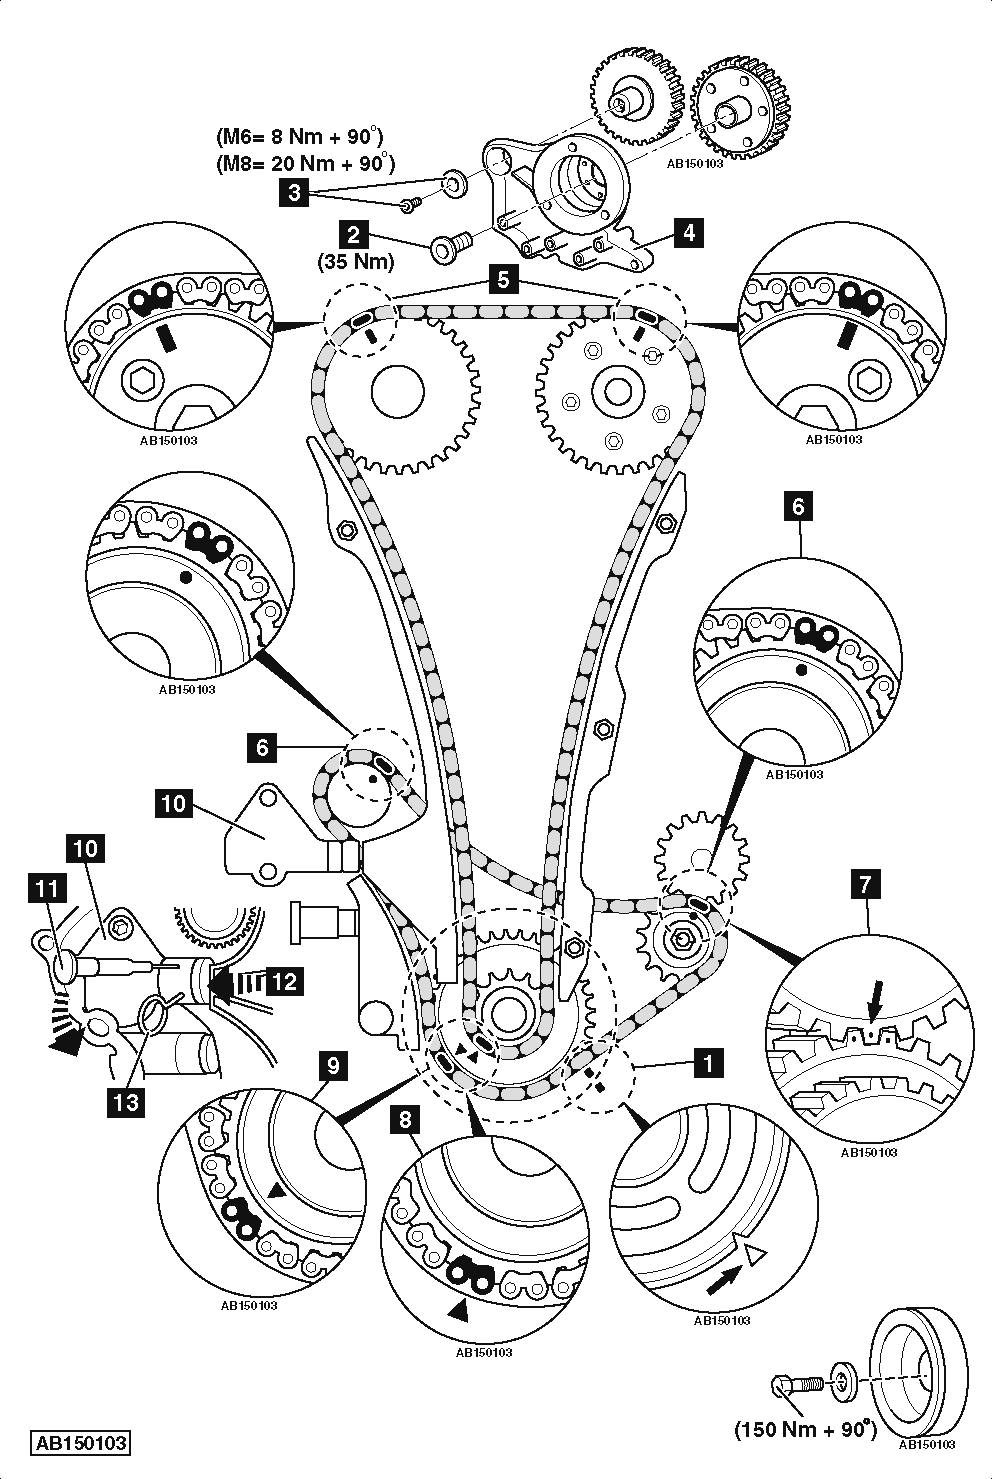 1987 volkswagen passat timing chain replacement diagram